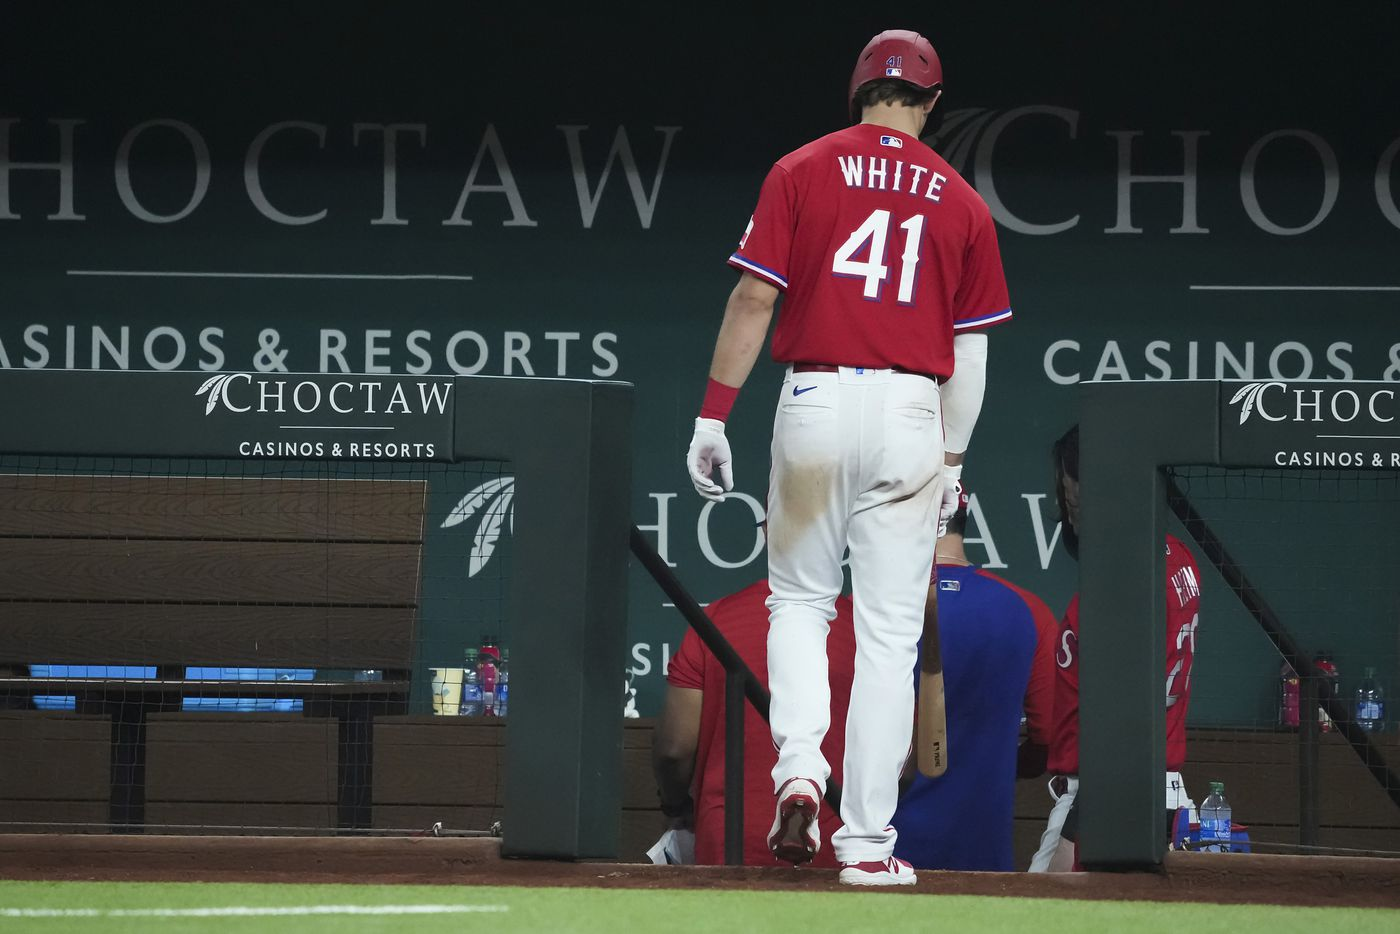 Texas Rangers left fielder Eli White heads for the dugout after striking out to end the tenth inning of a loss to the Minnesota Twins at Globe Life Field on Friday, June 18, 2021.